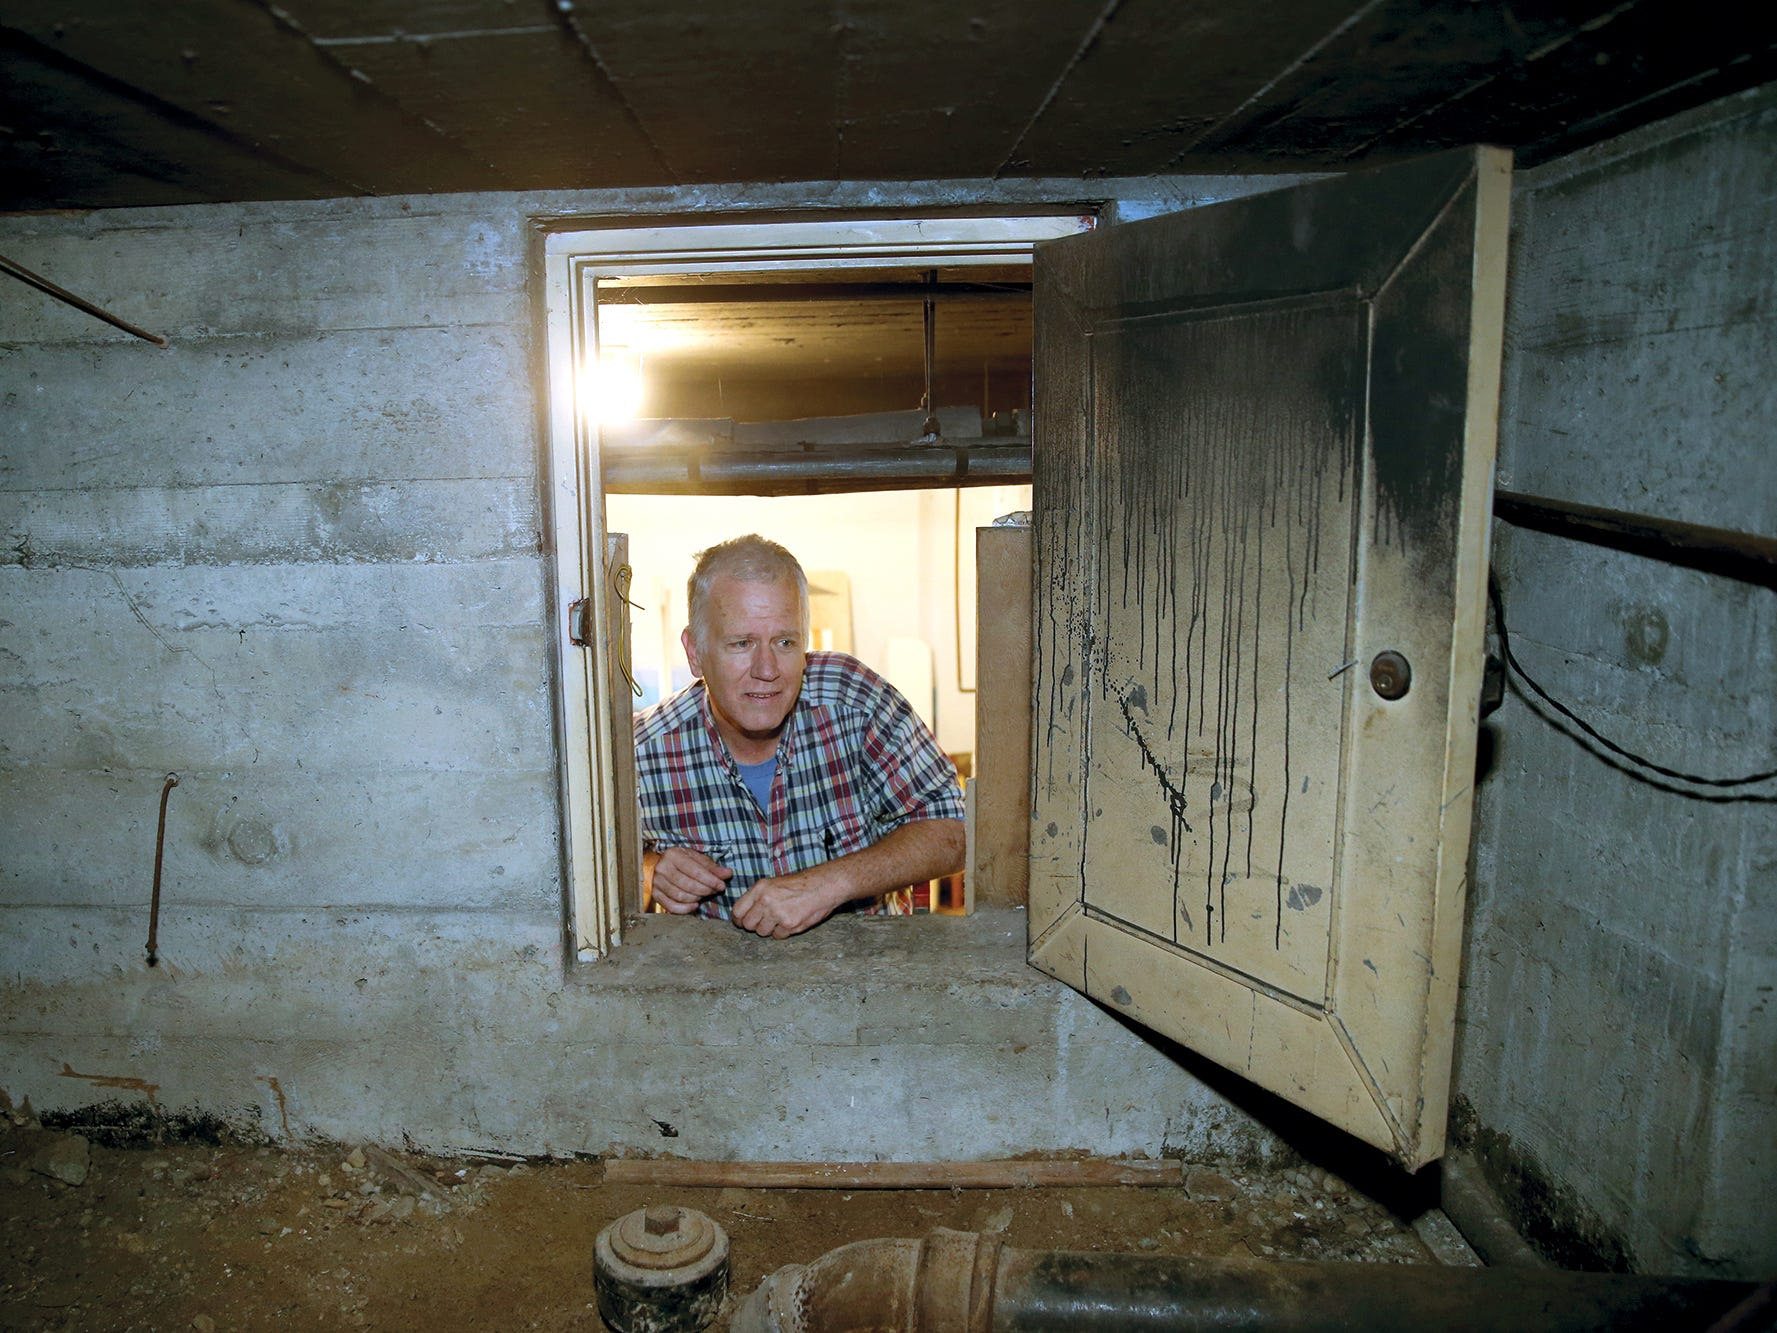 Inside a crawl space within Glenn and Lori Stockwell's home is a window into the history of World War II Bremerton. It appears their home was a training spot for air raid wardens, workers who lived on every block in the city and trained to ensure all was dark in the event of an air assault on Bremerton. The Stockwell's just discovered all the training and job materials in the crawl space, more than 70 years after the war's end.